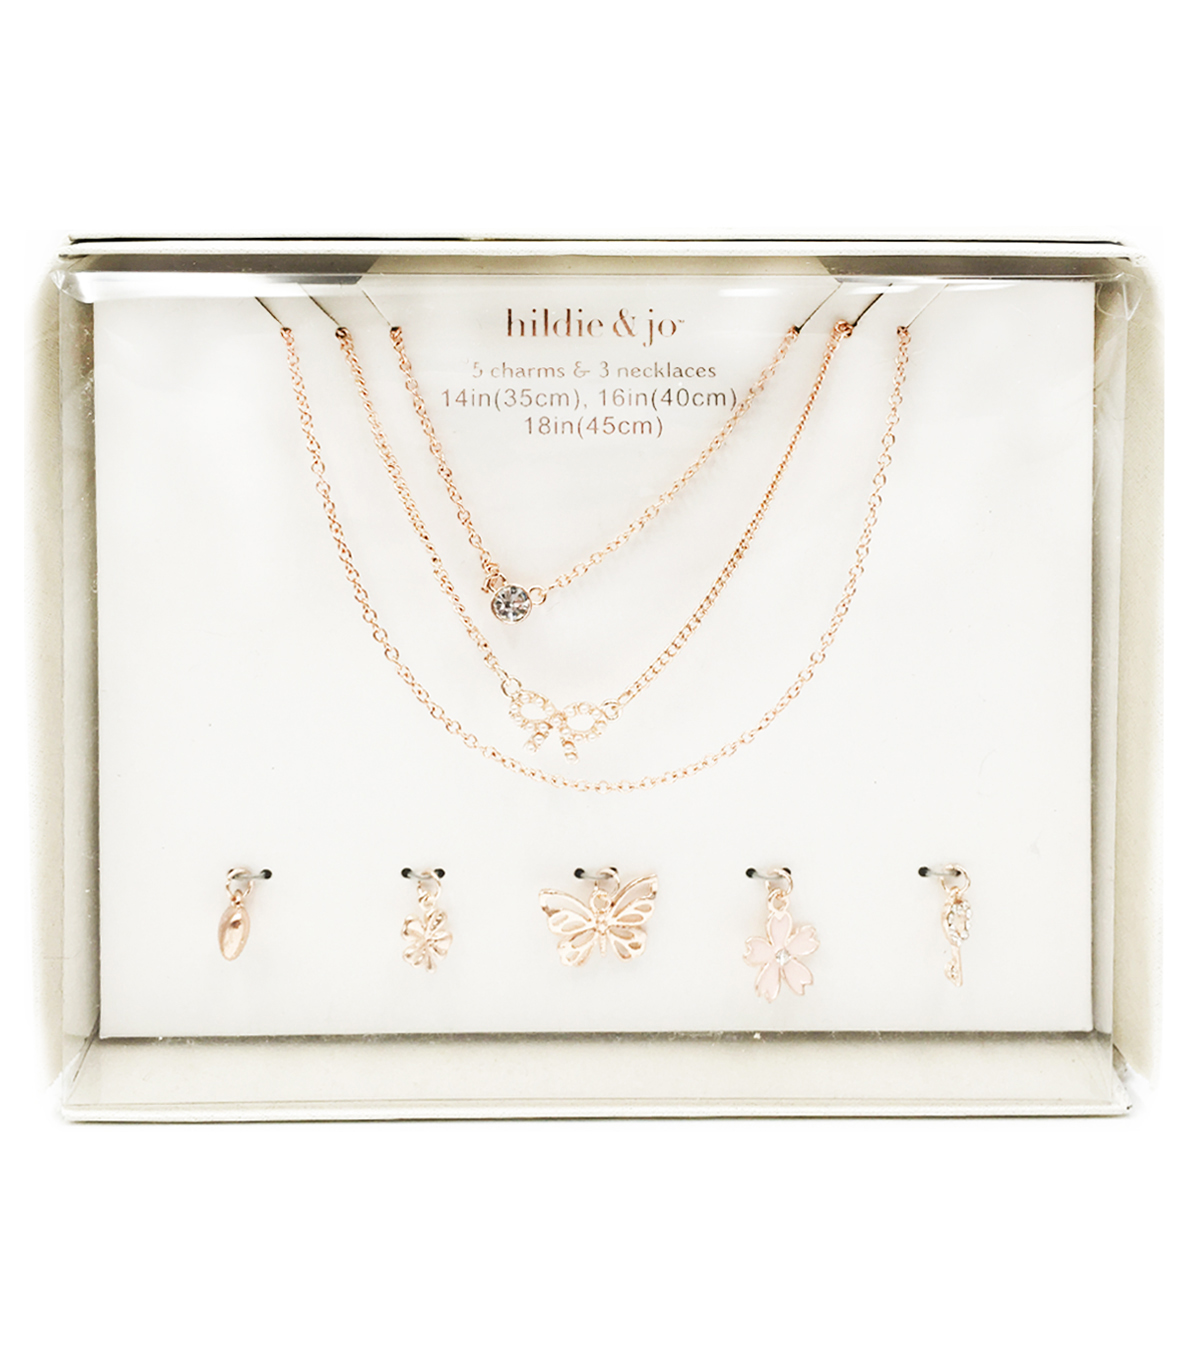 hildie & jo Rose Gold Charms & Necklaces